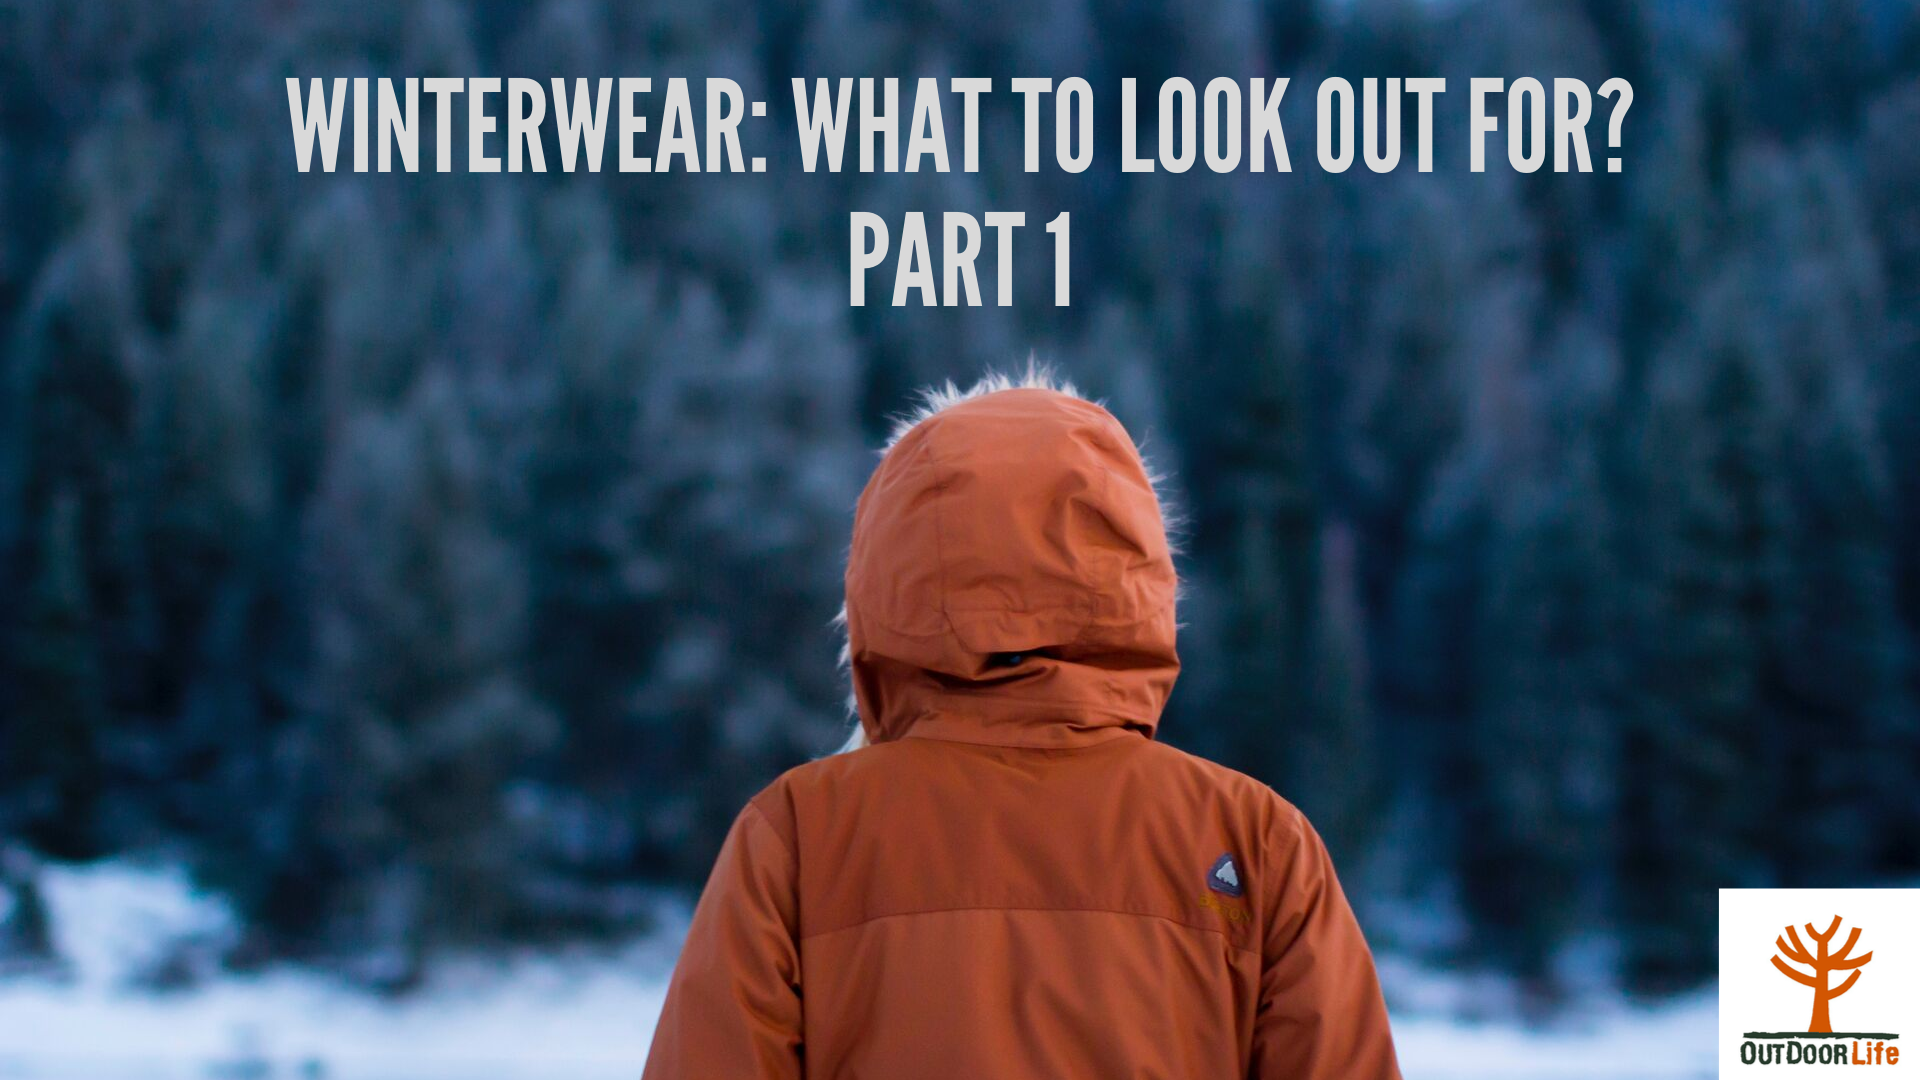 The Beginner's Guide to Winterwear Part 1